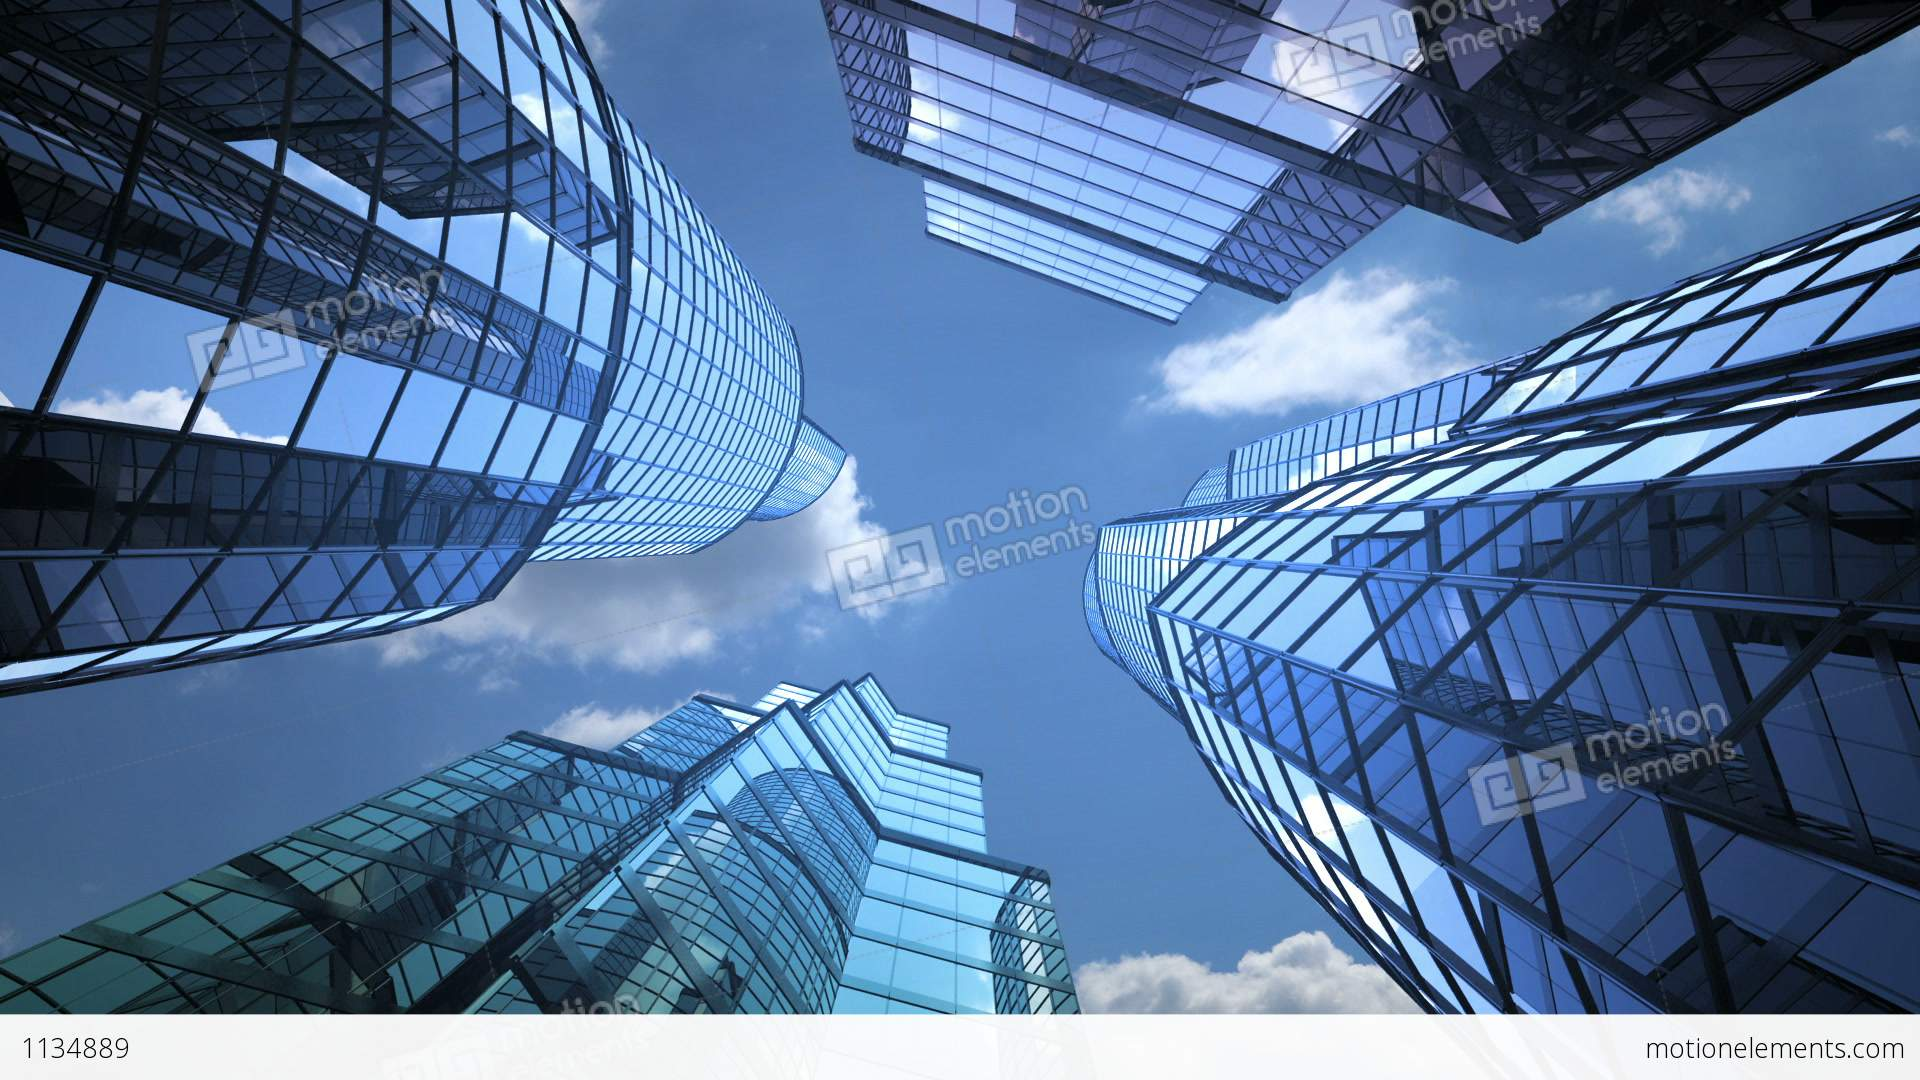 me1134889-business-background-skyscrapers-sky-hd-a0290.jpg